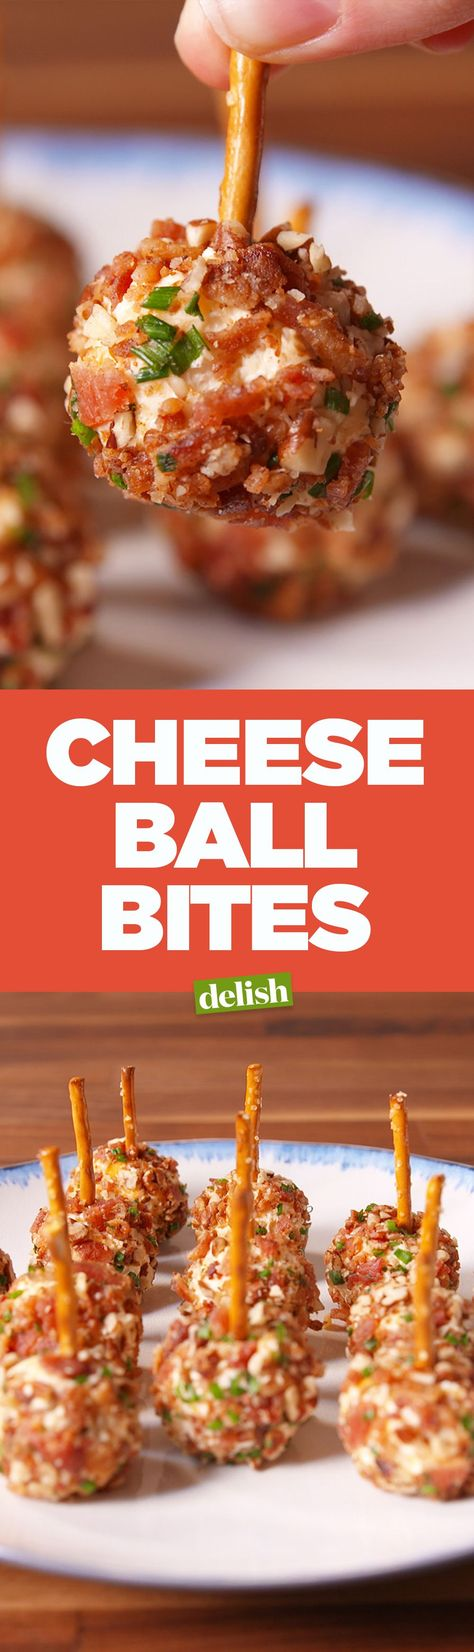 https://i.pinimg.com/474x/57/42/4d/57424da8bd1c2fe3264f9f610a882ac2--cheese-ball-bites-appetizers-party-cheese-platter.jpg